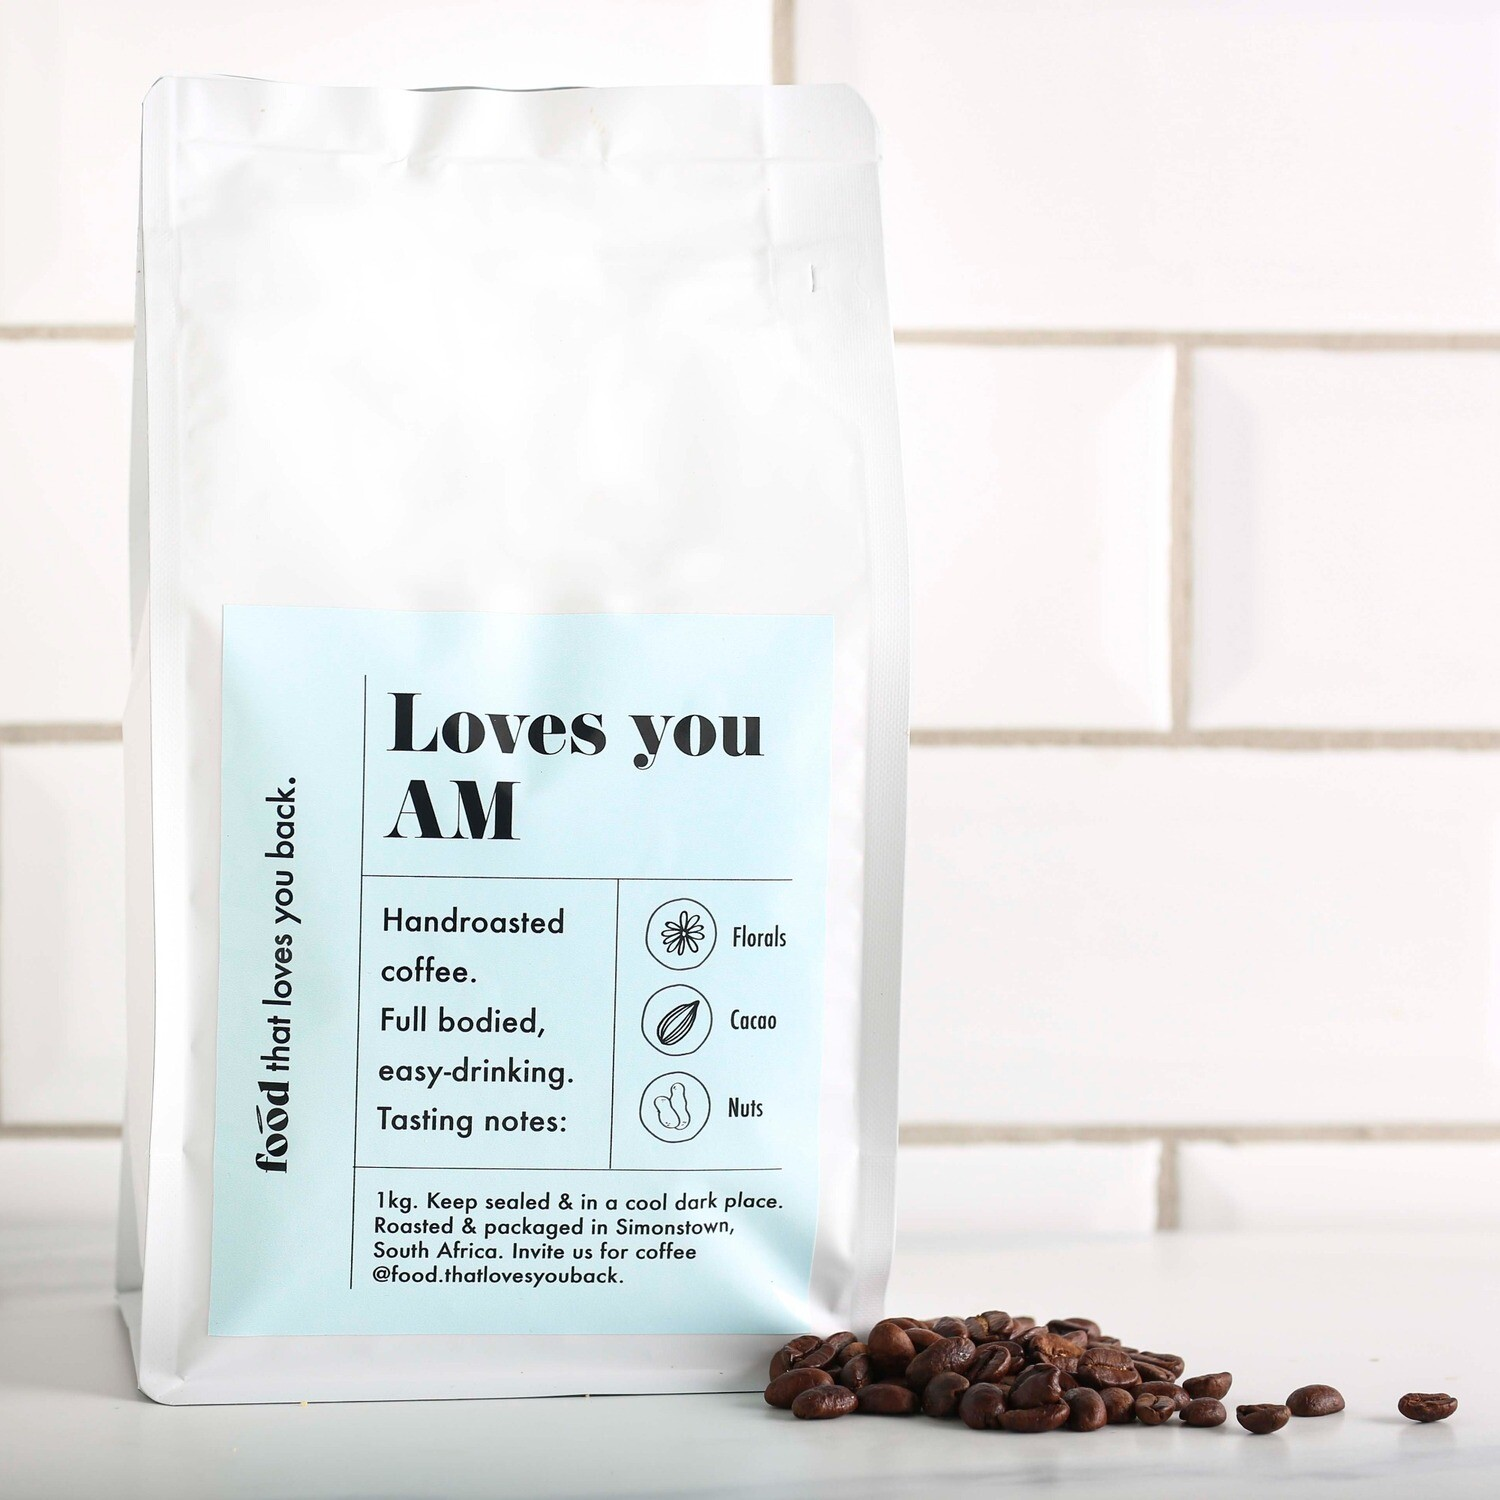 Loves you AM: Coffee